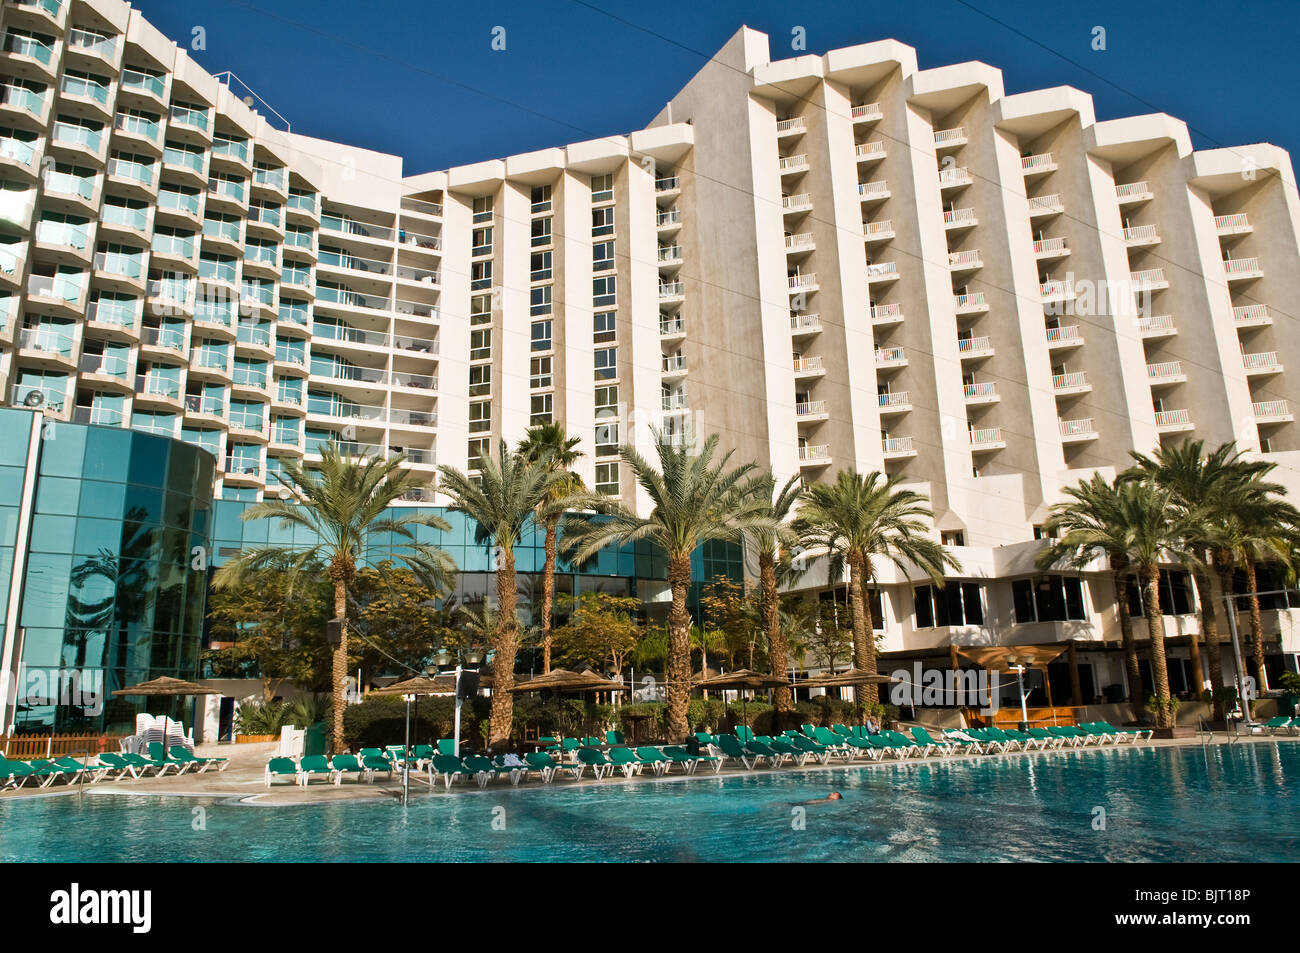 A prime holiday destinations - a 5 star resort in Ein Bokek, Dead sea, Israel. - Stock Image